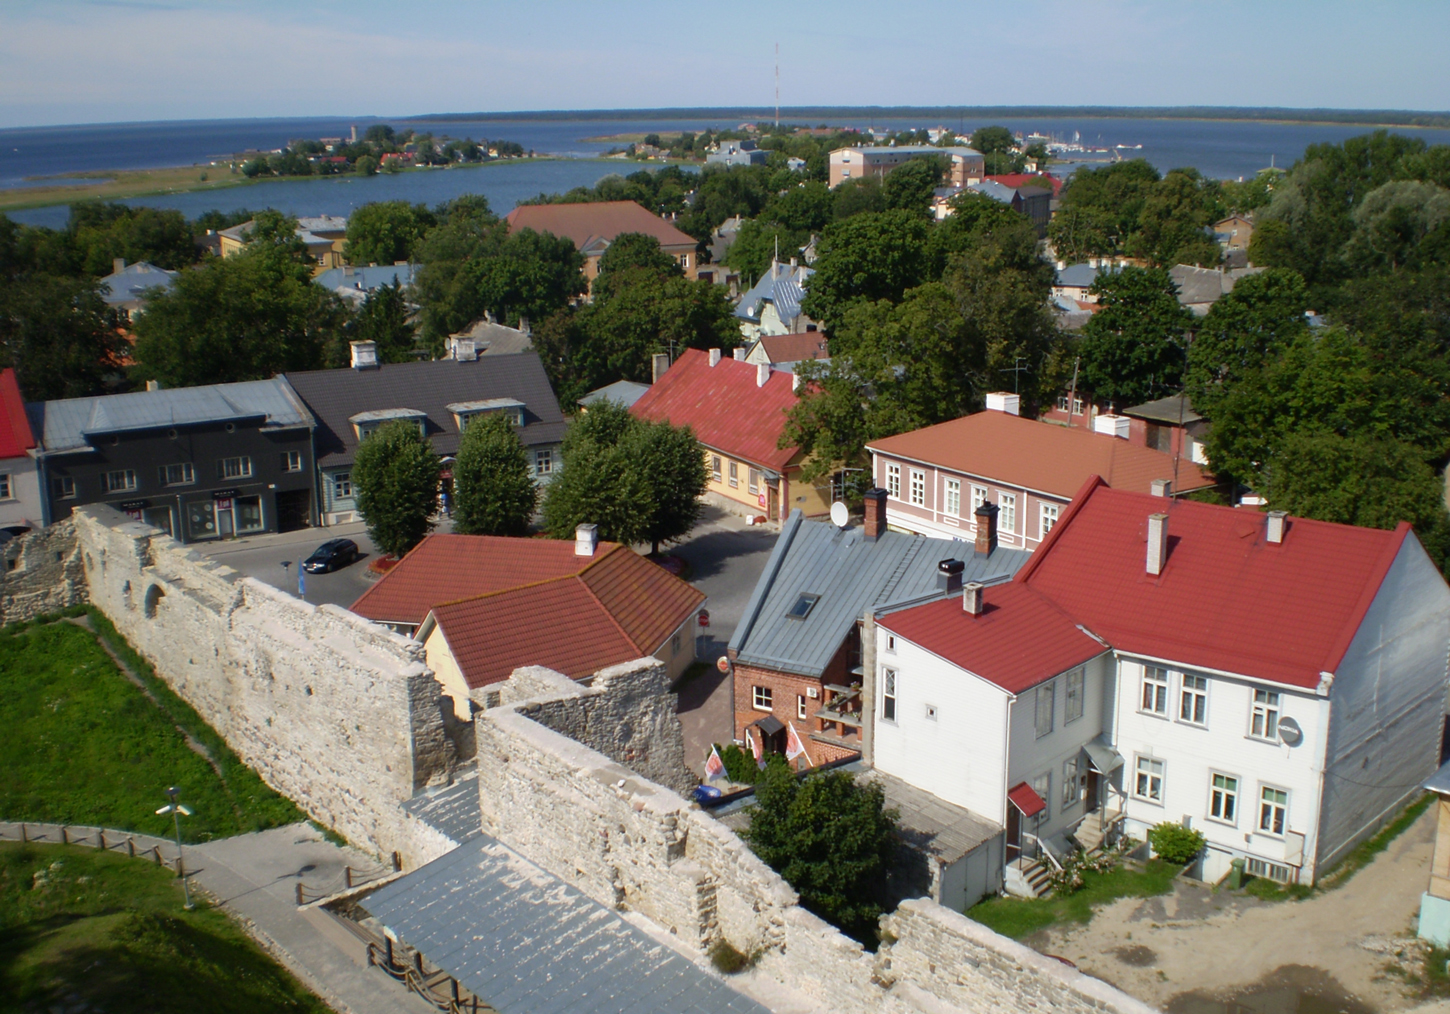 haapsalu cute white buildings with red roofs, seen from haapsalu castle. City view, surrounded by trees and baltic sea in the background.